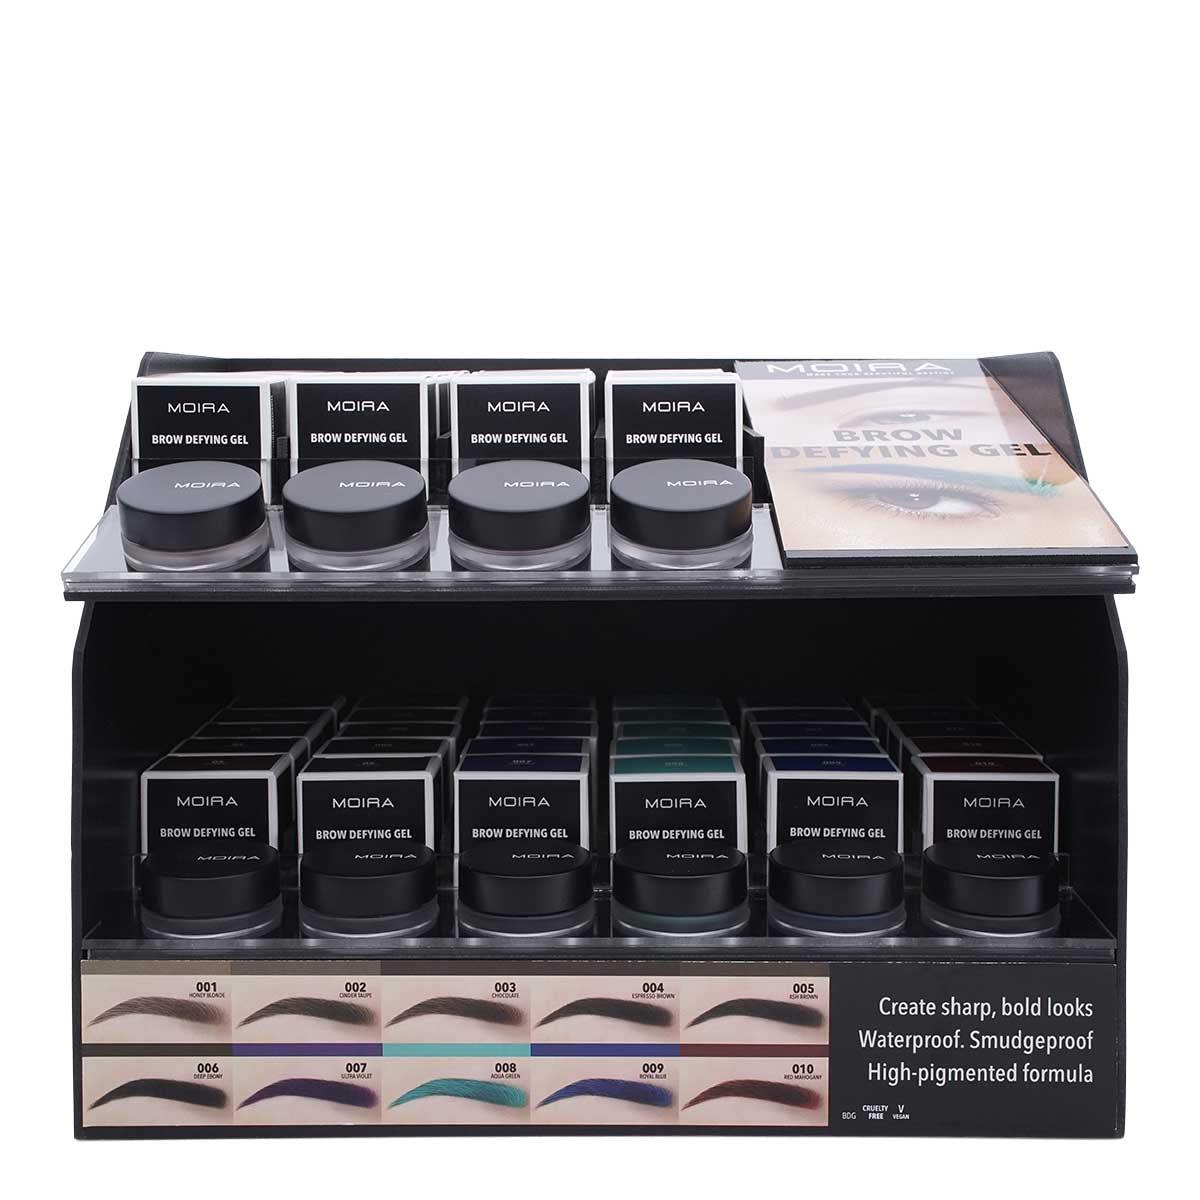 MOIRA COSMETICS BROW DEFYING GEL, DISPLAY OF 60, 1 DISPLAY PER CASE, BDG SET (1/cs)